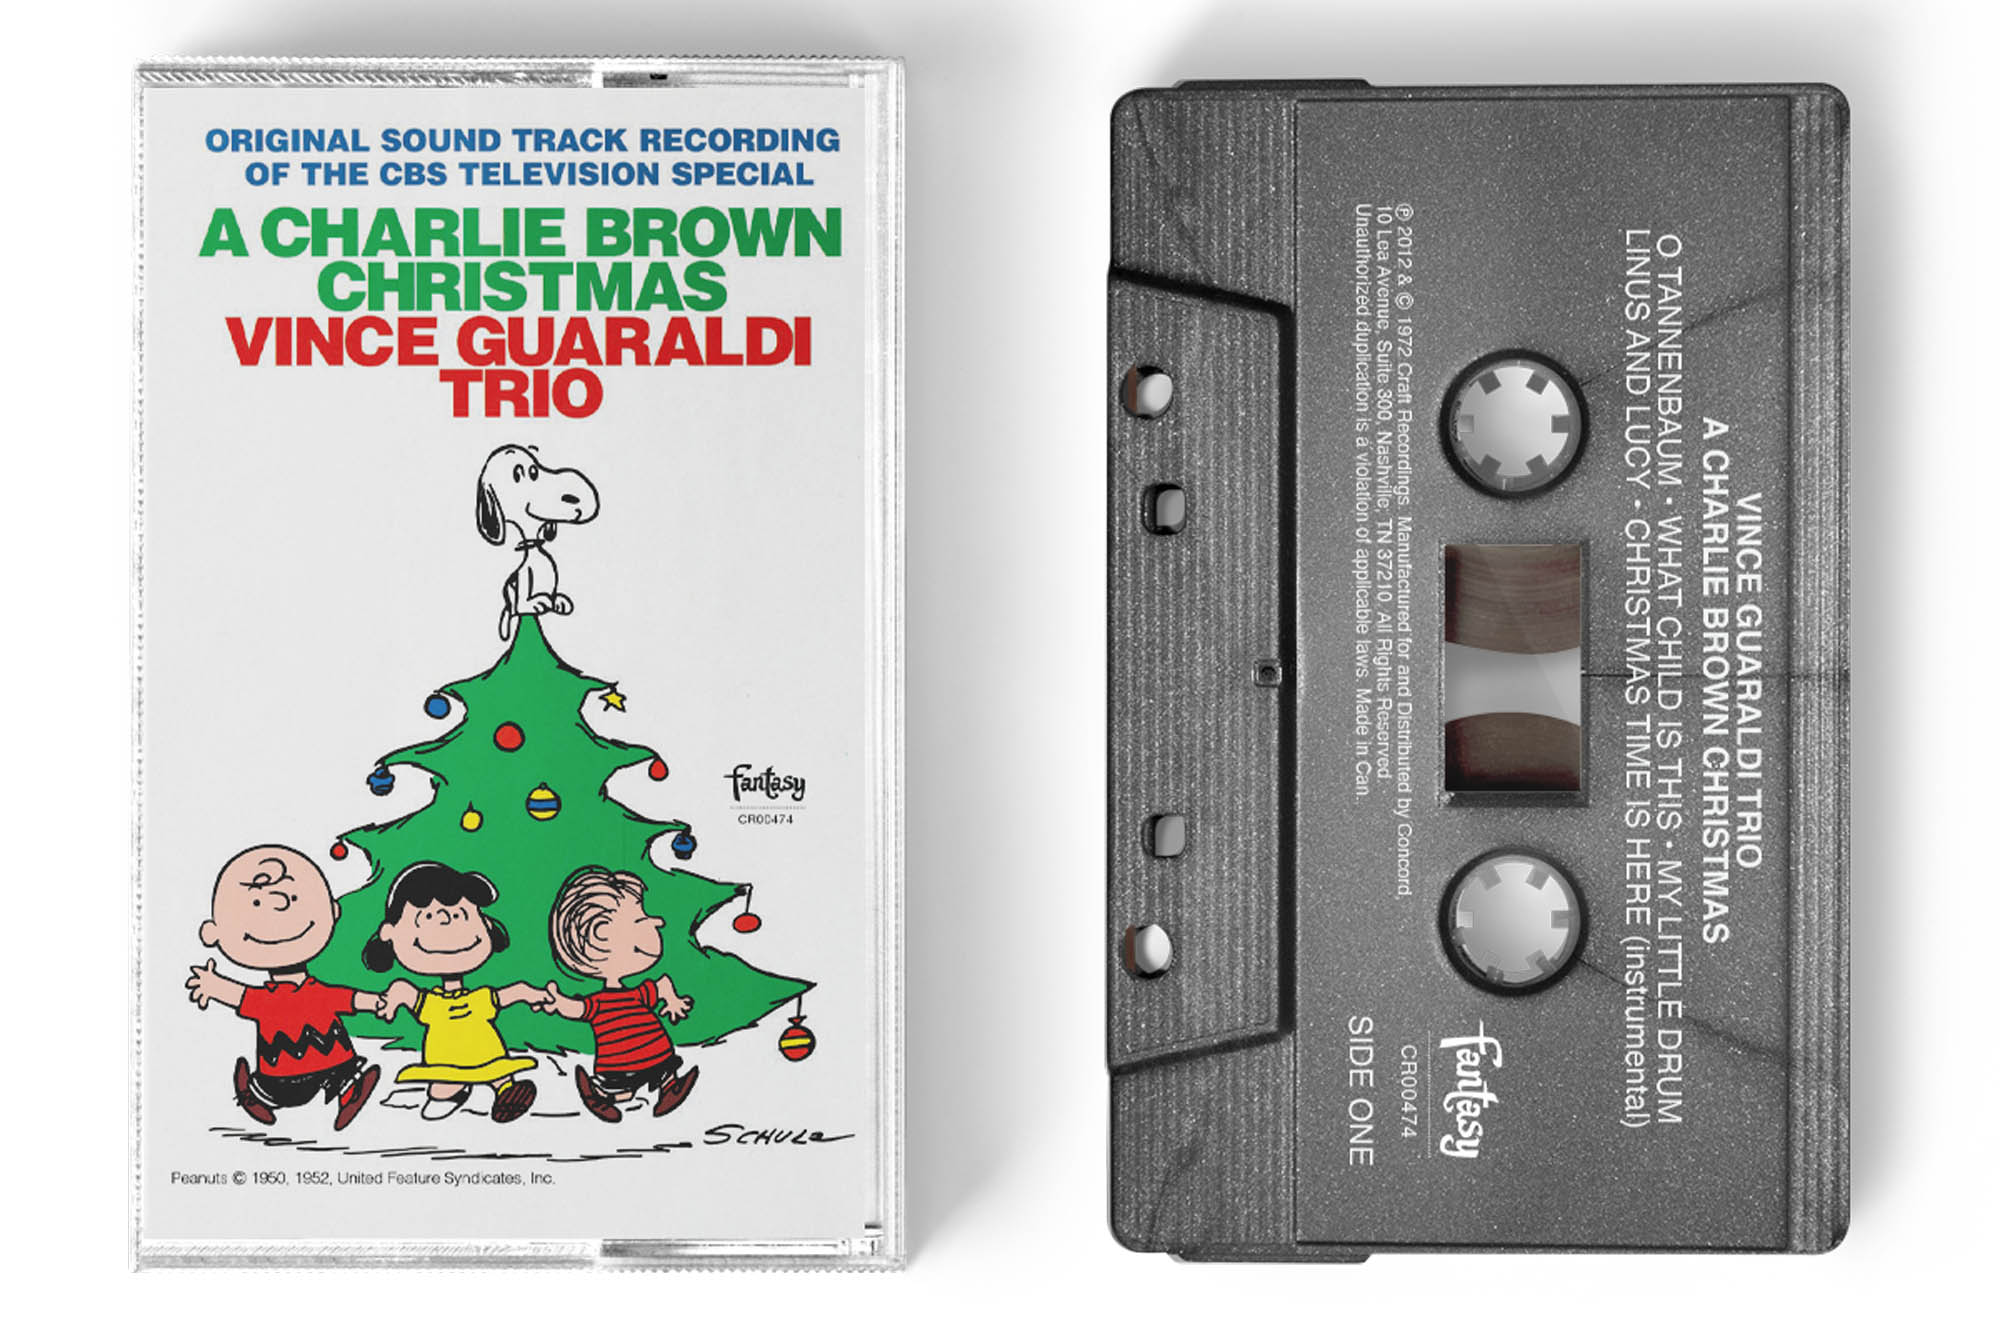 'A Charlie Brown Christmas' silver edition cassette